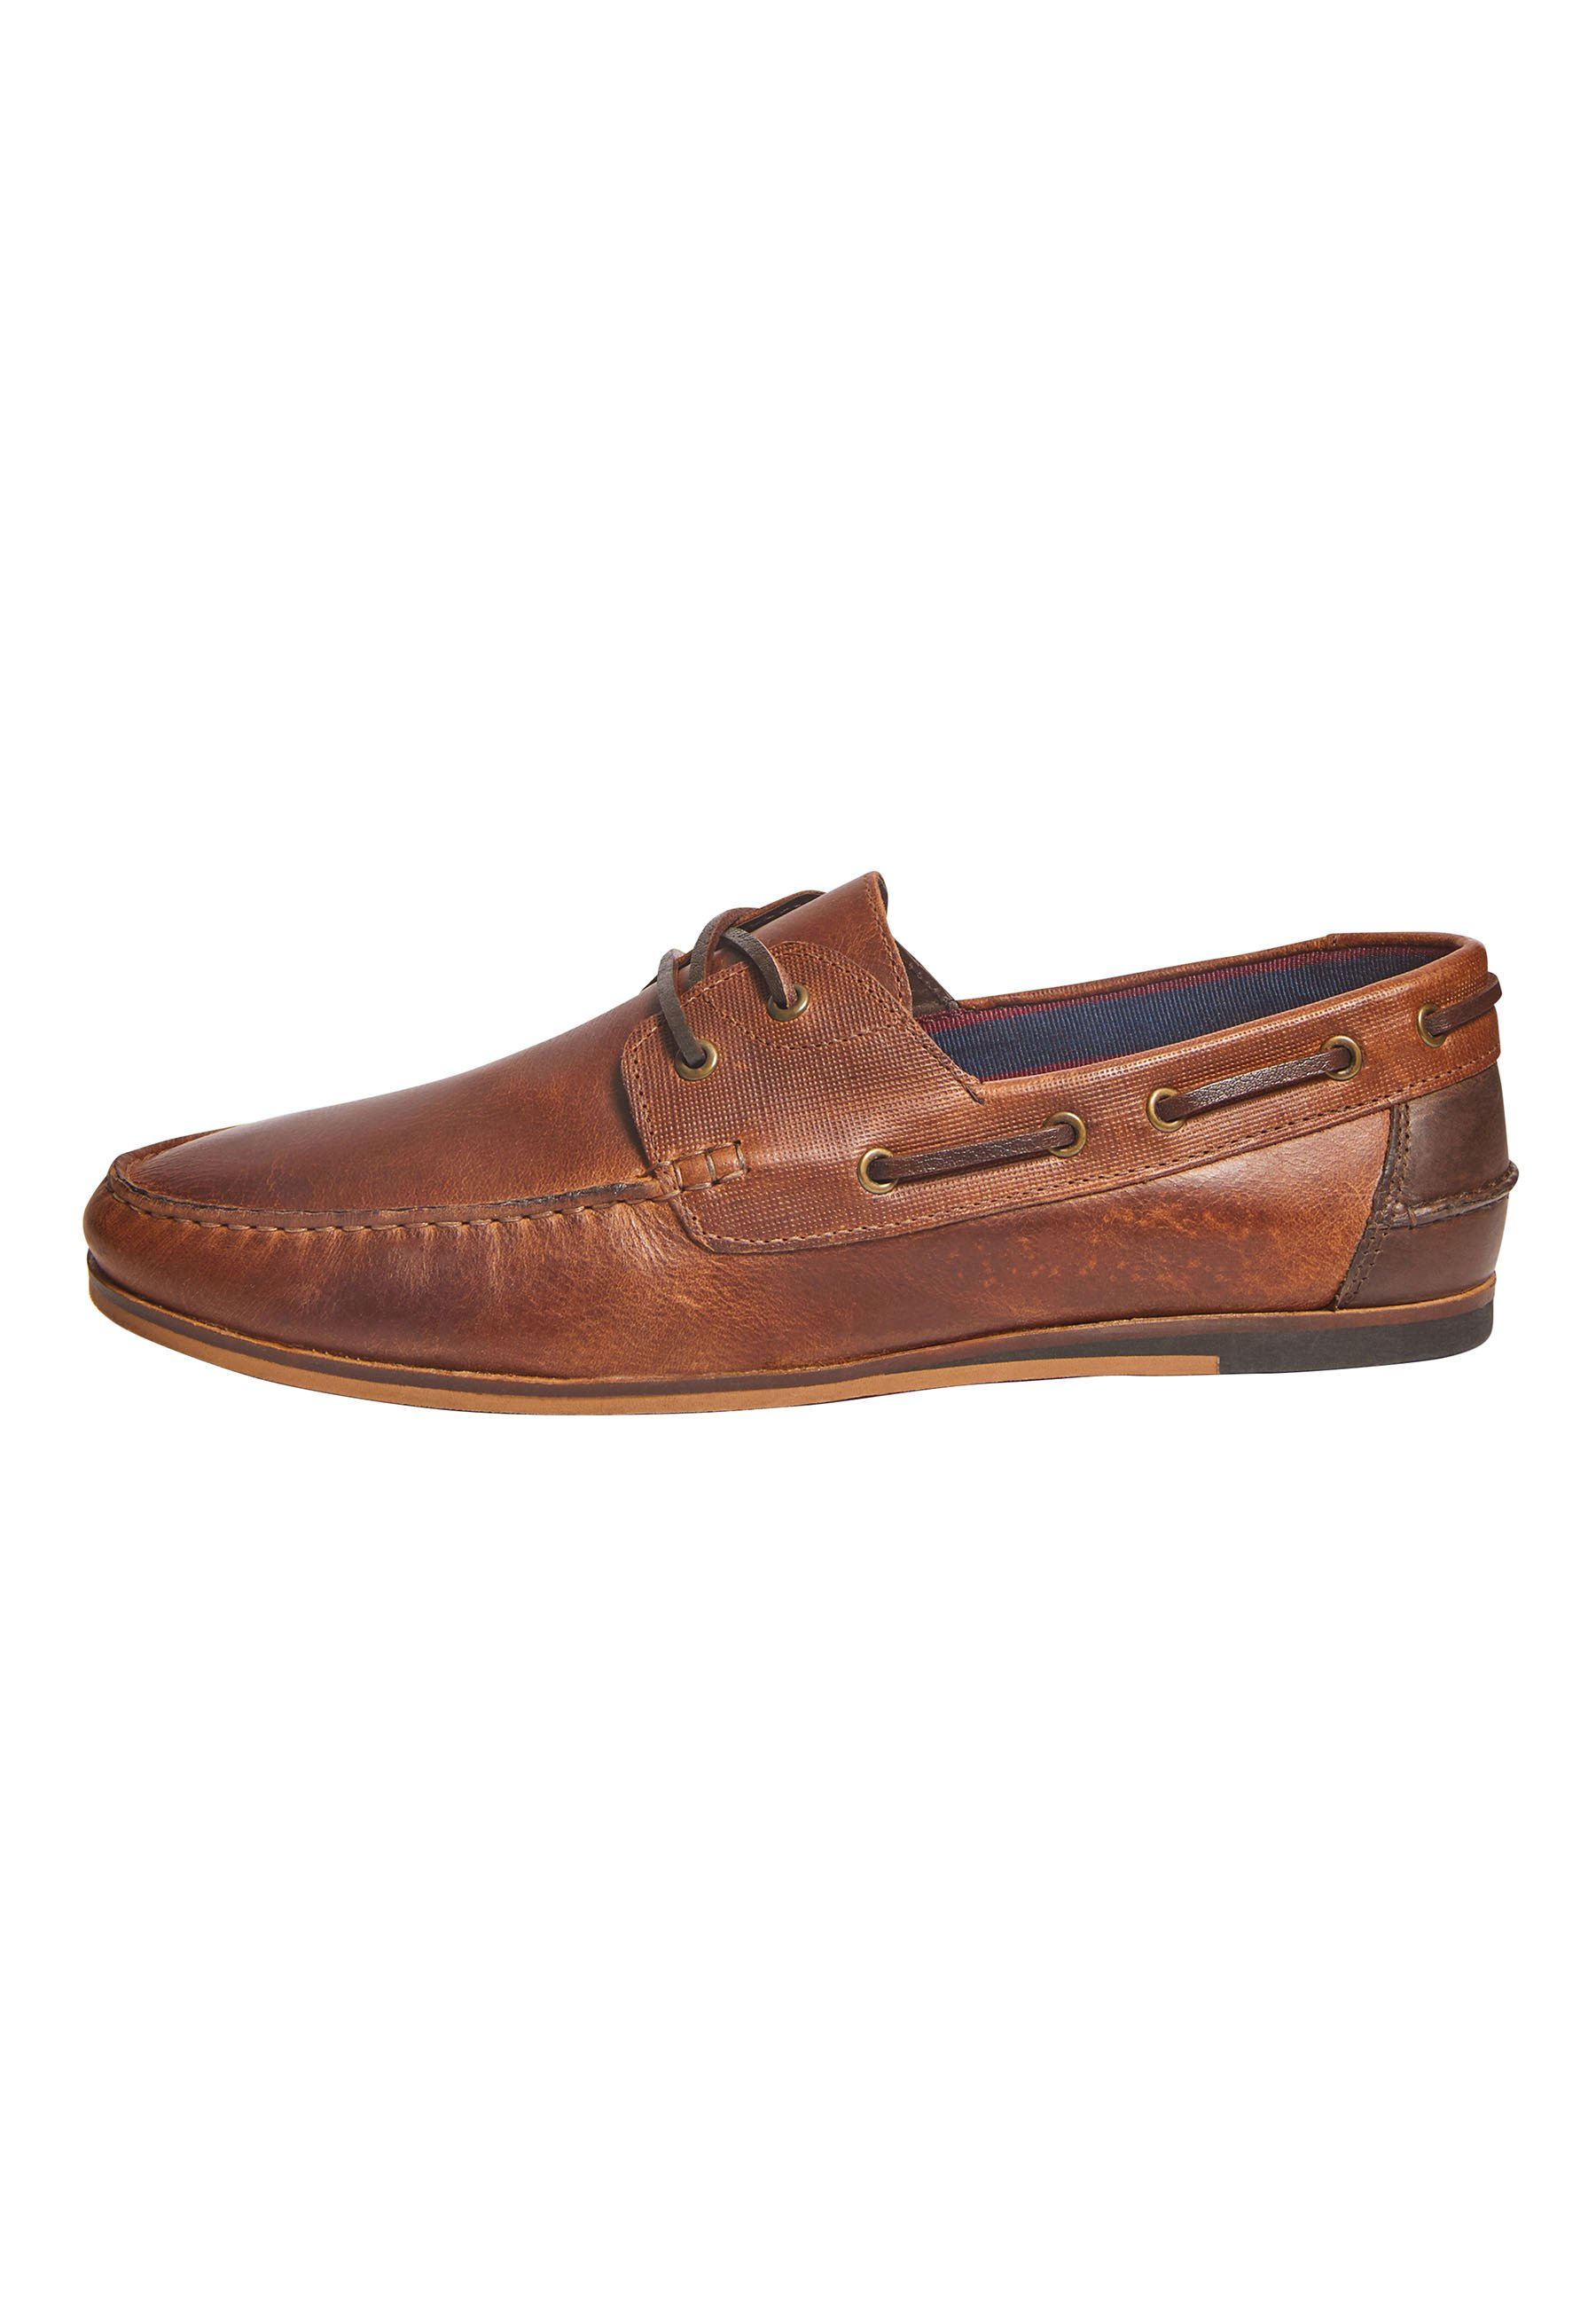 Homme NAVY FORMAL TEXTURED LEATHER BOAT SHOES - Chaussures bateau